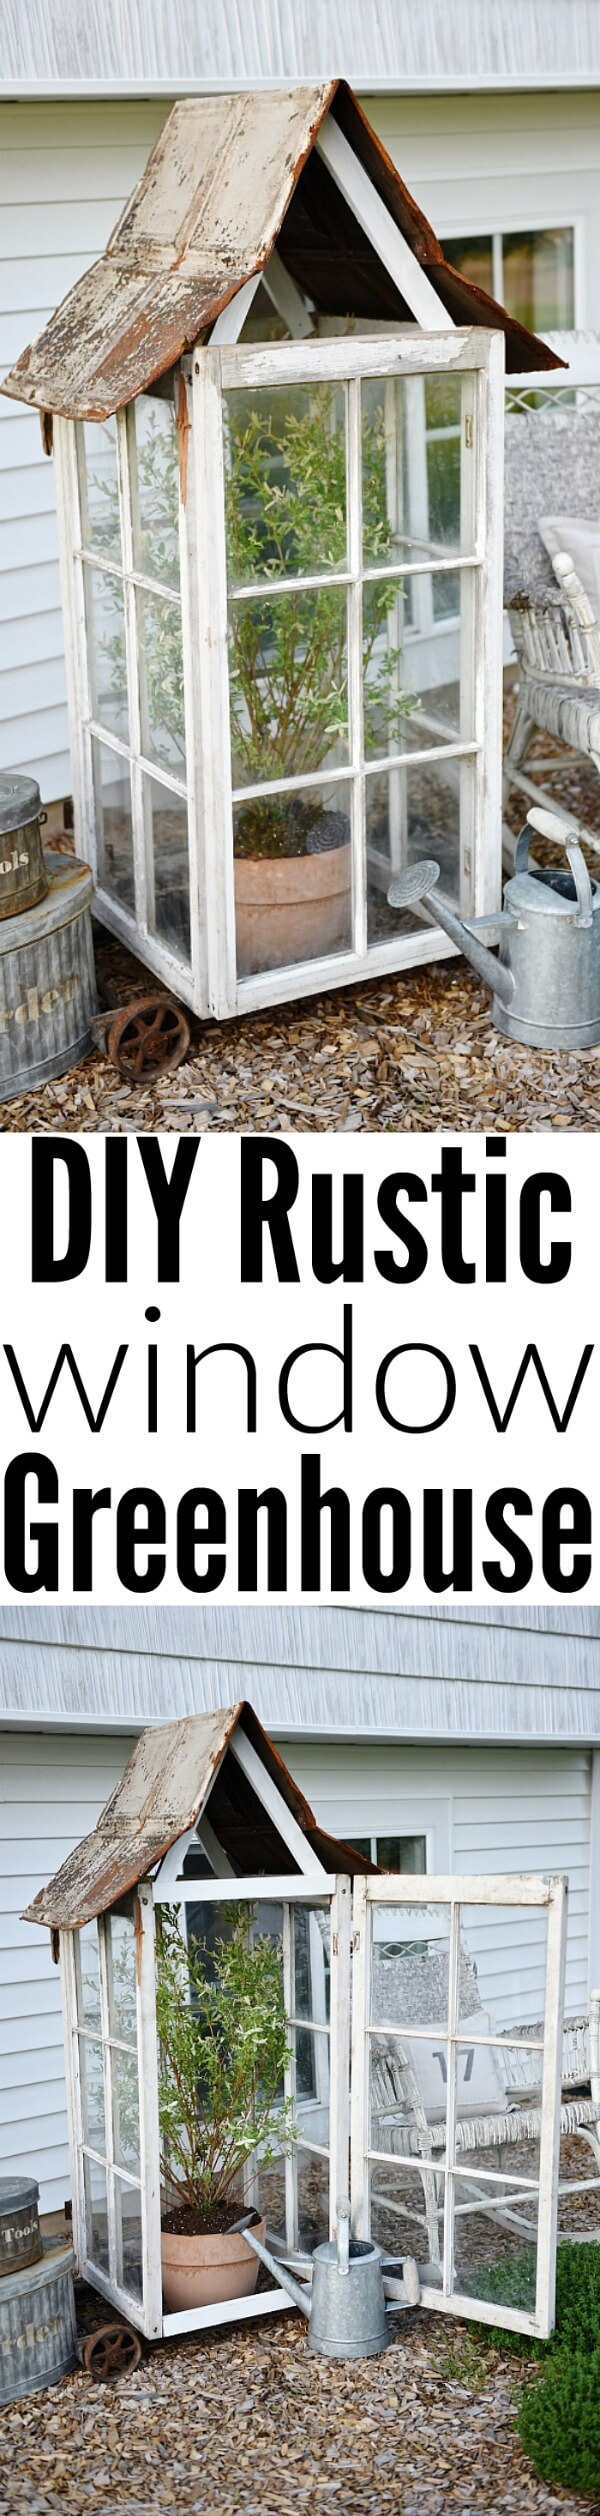 A Single- Sized Rustic Green House For Plants